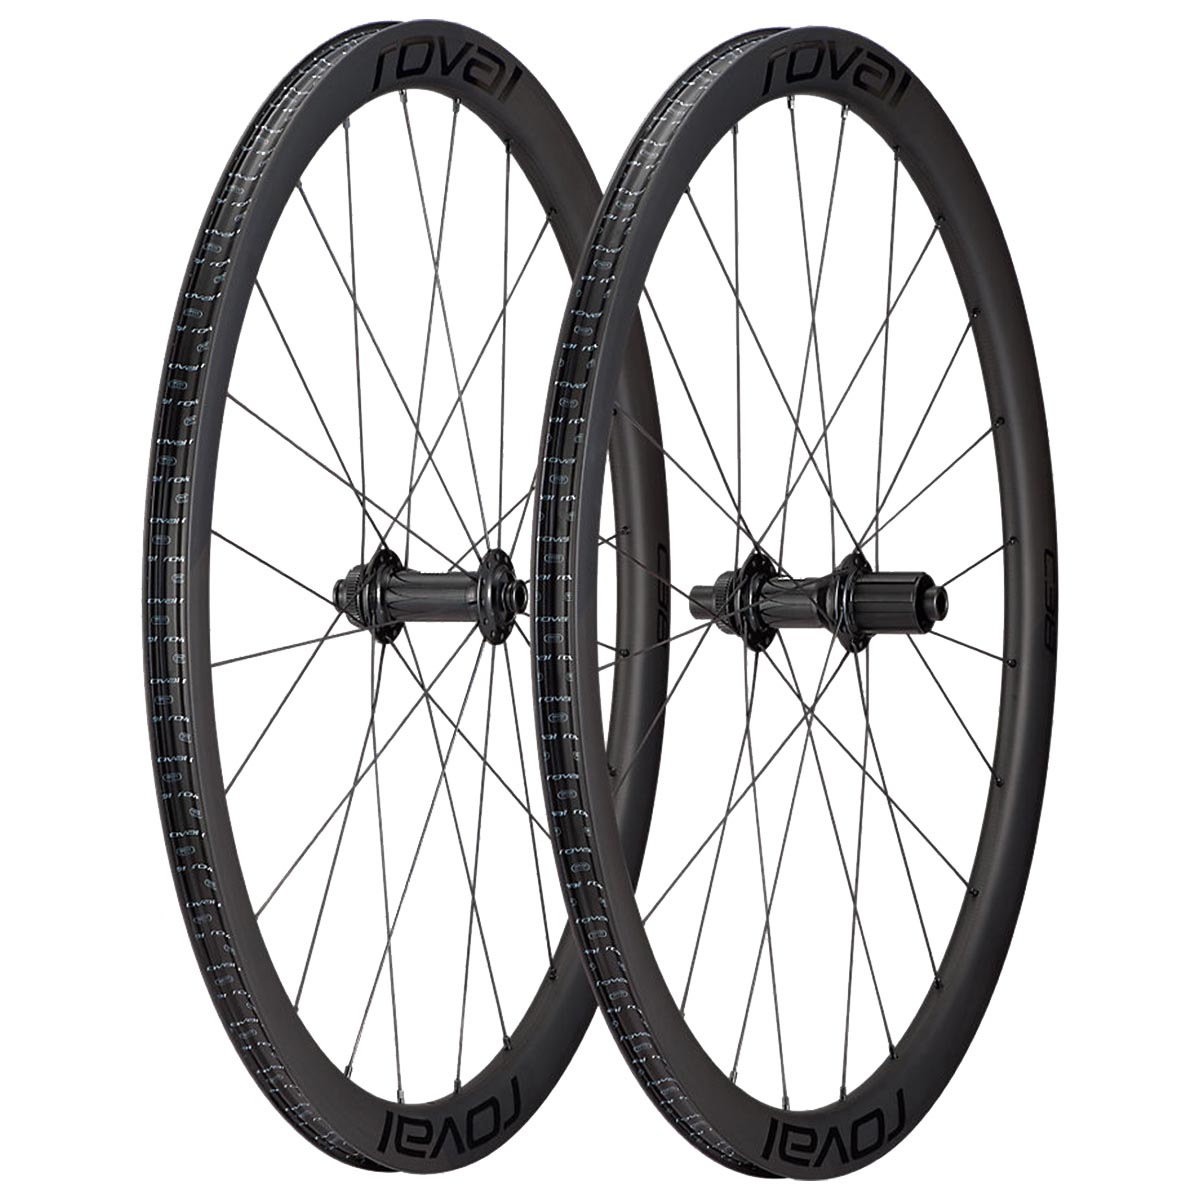 ROUES ROVAL C38 BOOST CARBON DISQUE